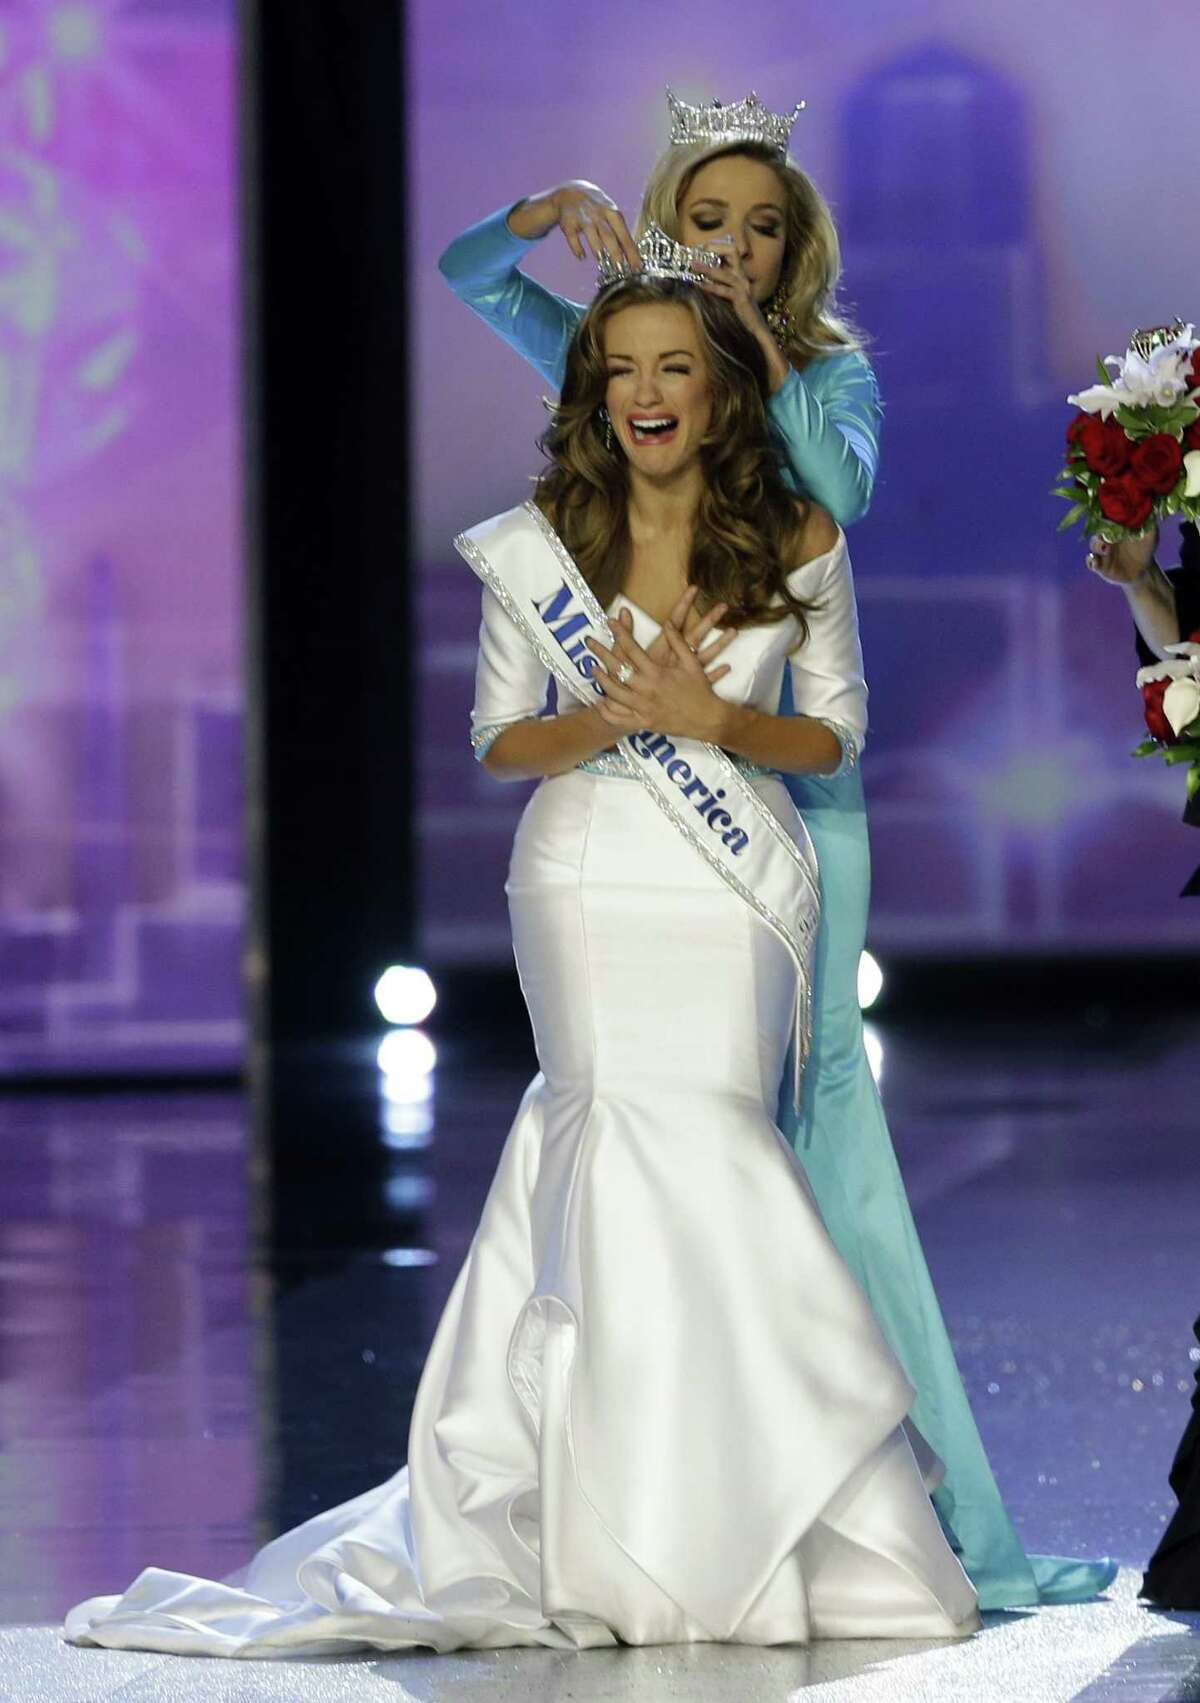 Miss Georgia Betty Cantrell is crowned Miss America 2016 by Miss America 2015 Kira Kazantsev at the 2016 Miss America pageant, Sunday, Sept. 13, 2015, in Atlantic City, N.J. (AP Photo/Mel Evans)